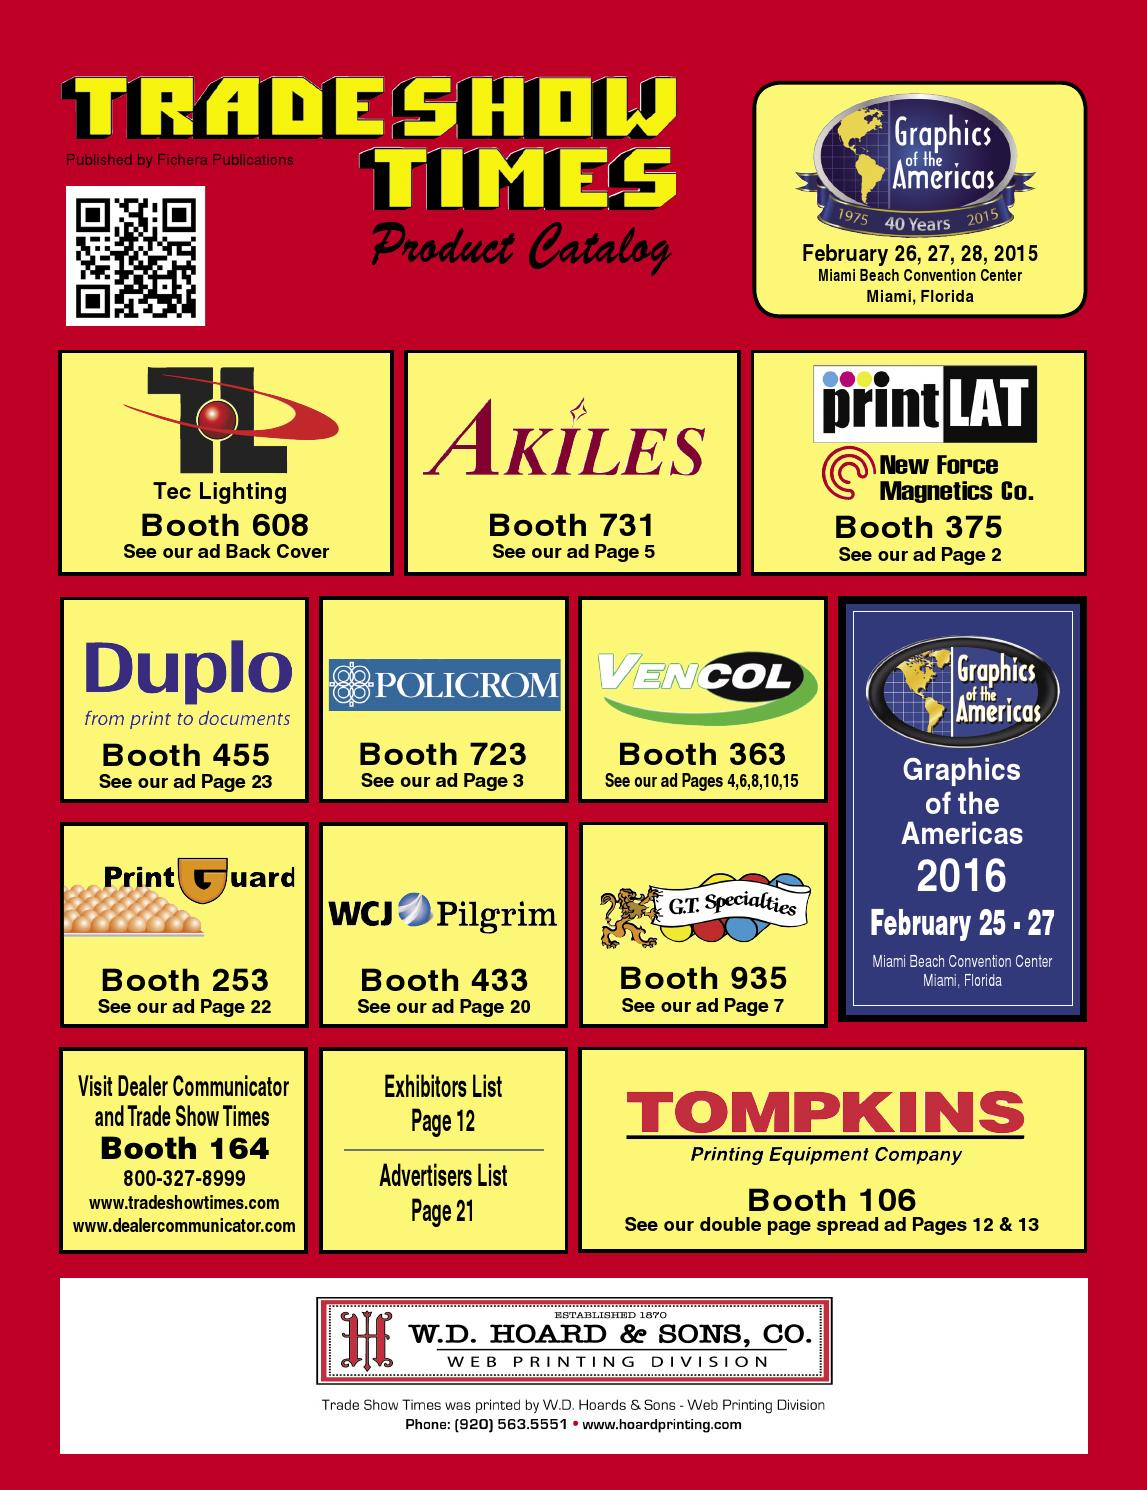 Trade Show Times Graphics of the Americas 2015 by Fichera